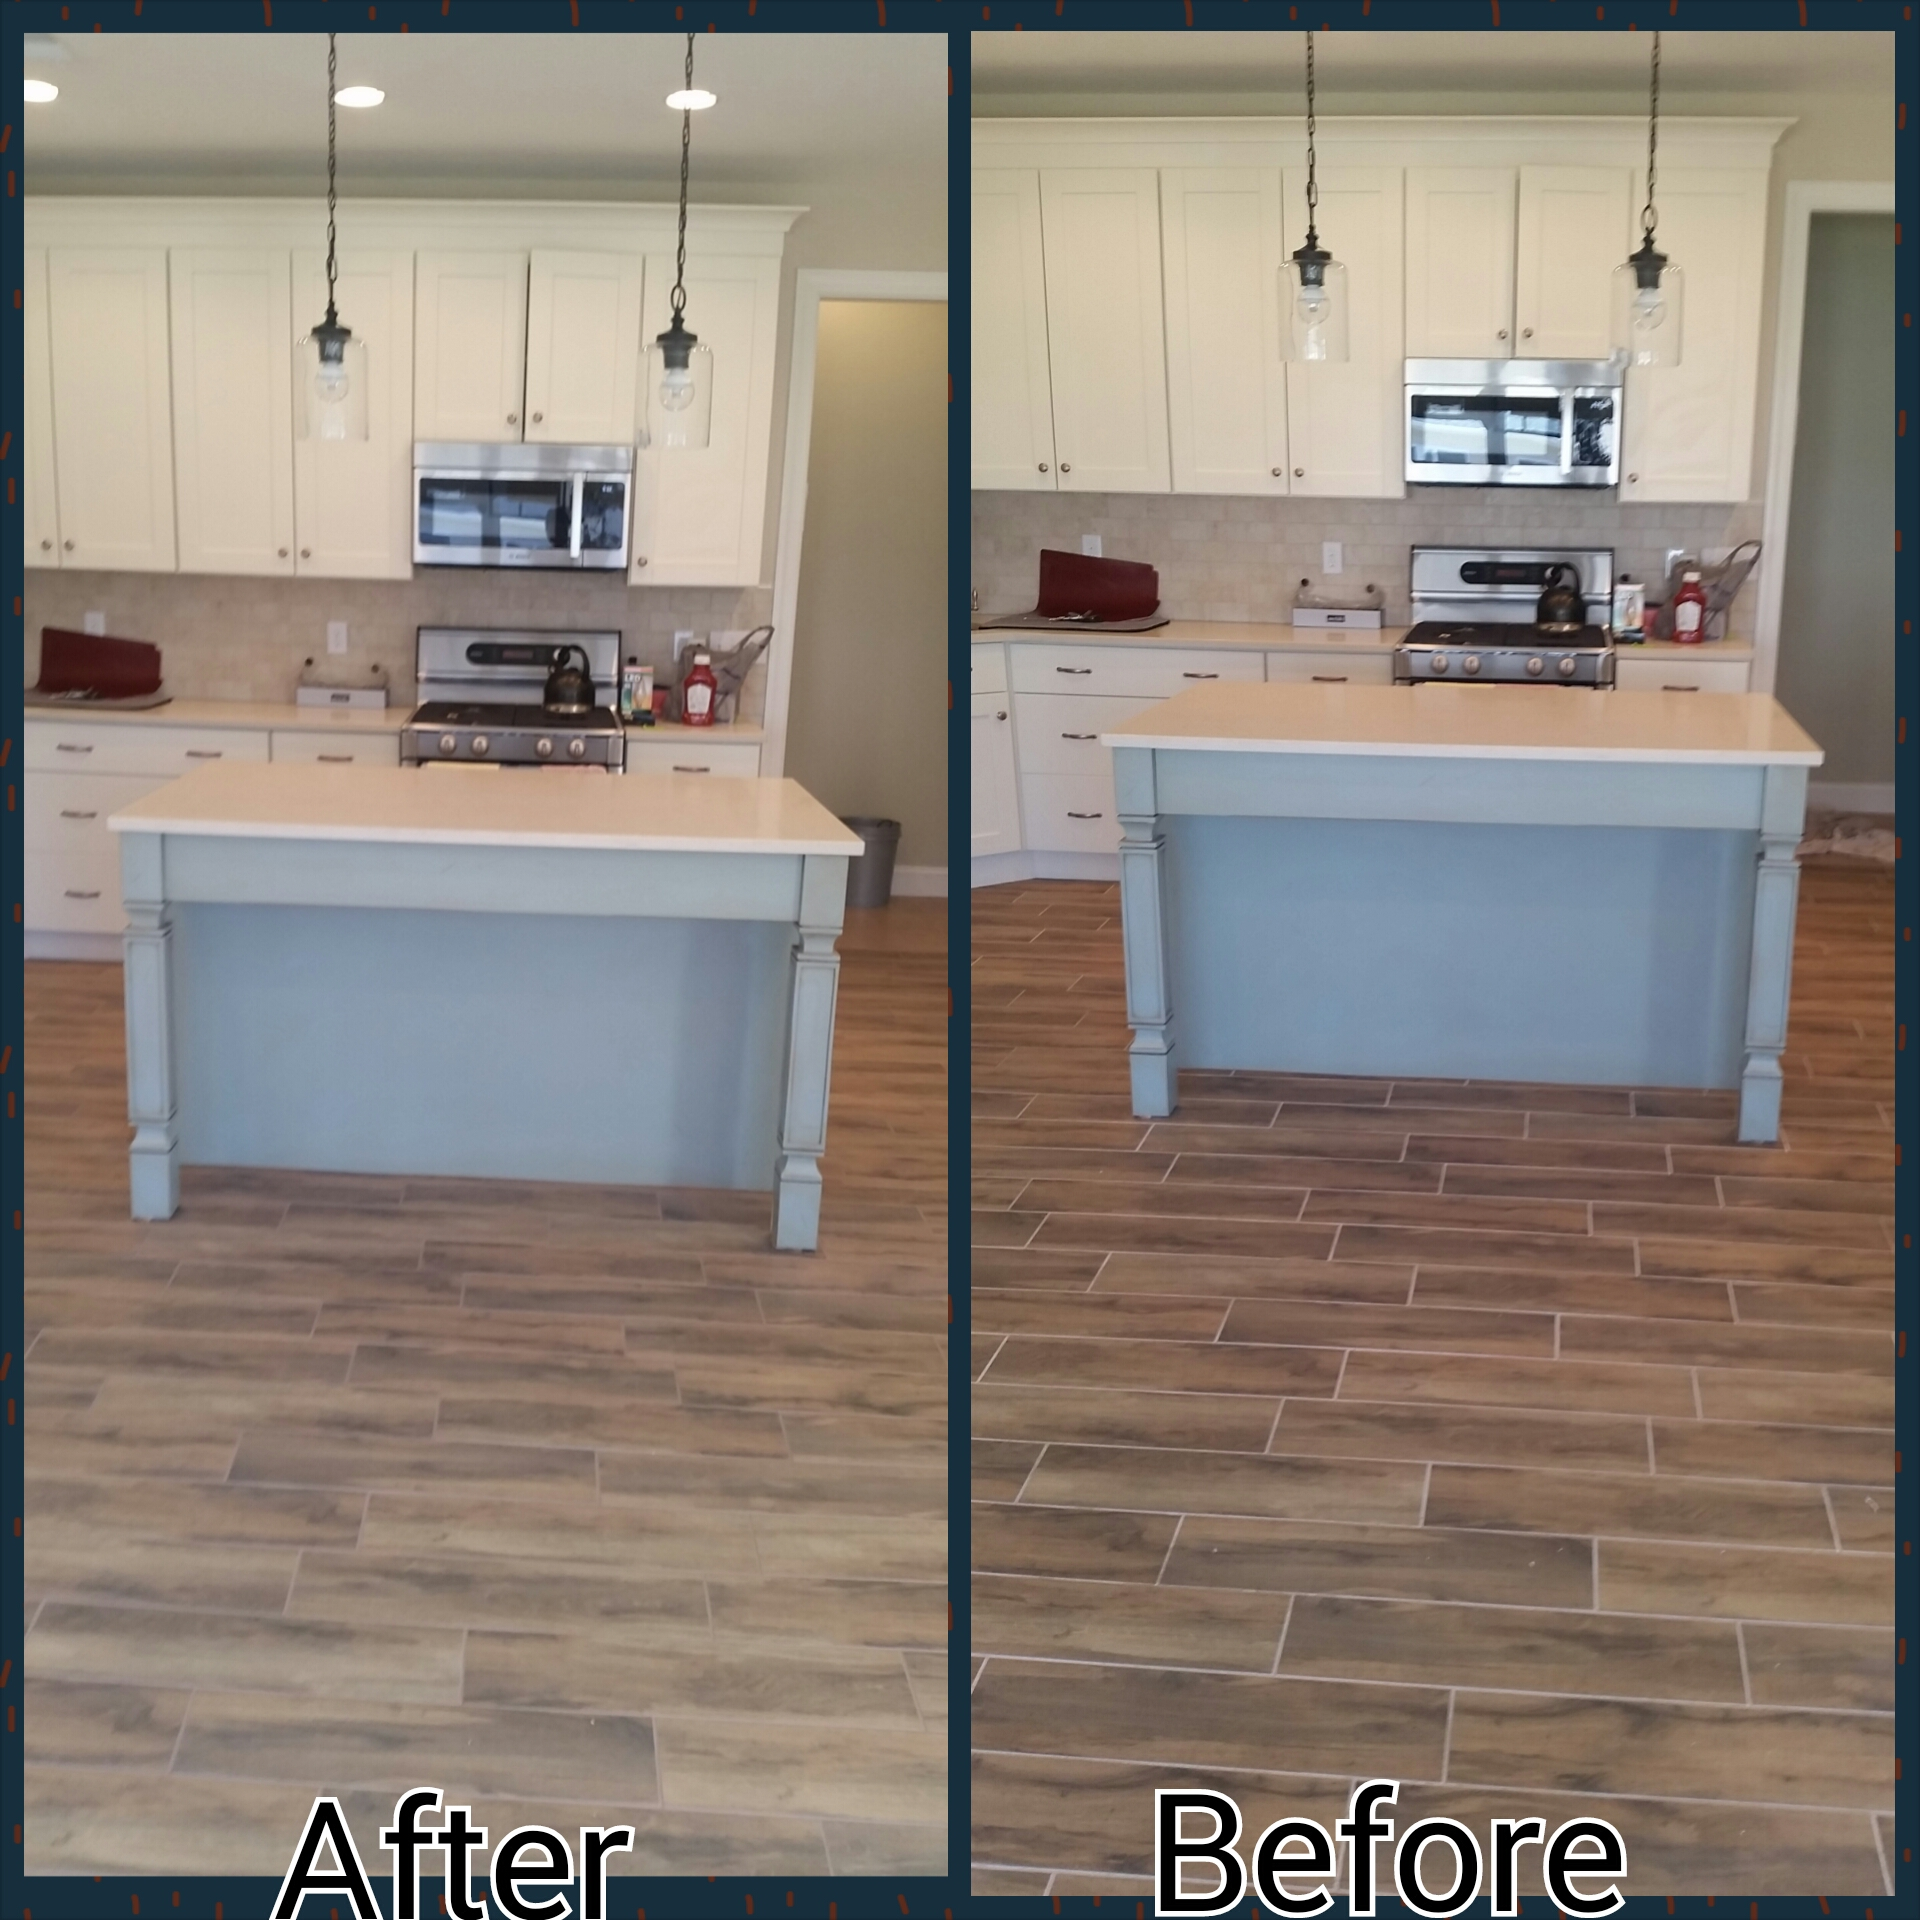 At Grout Works Wood Look Tile 1 We Have A Cutting Edge Solution That Can Change The Color